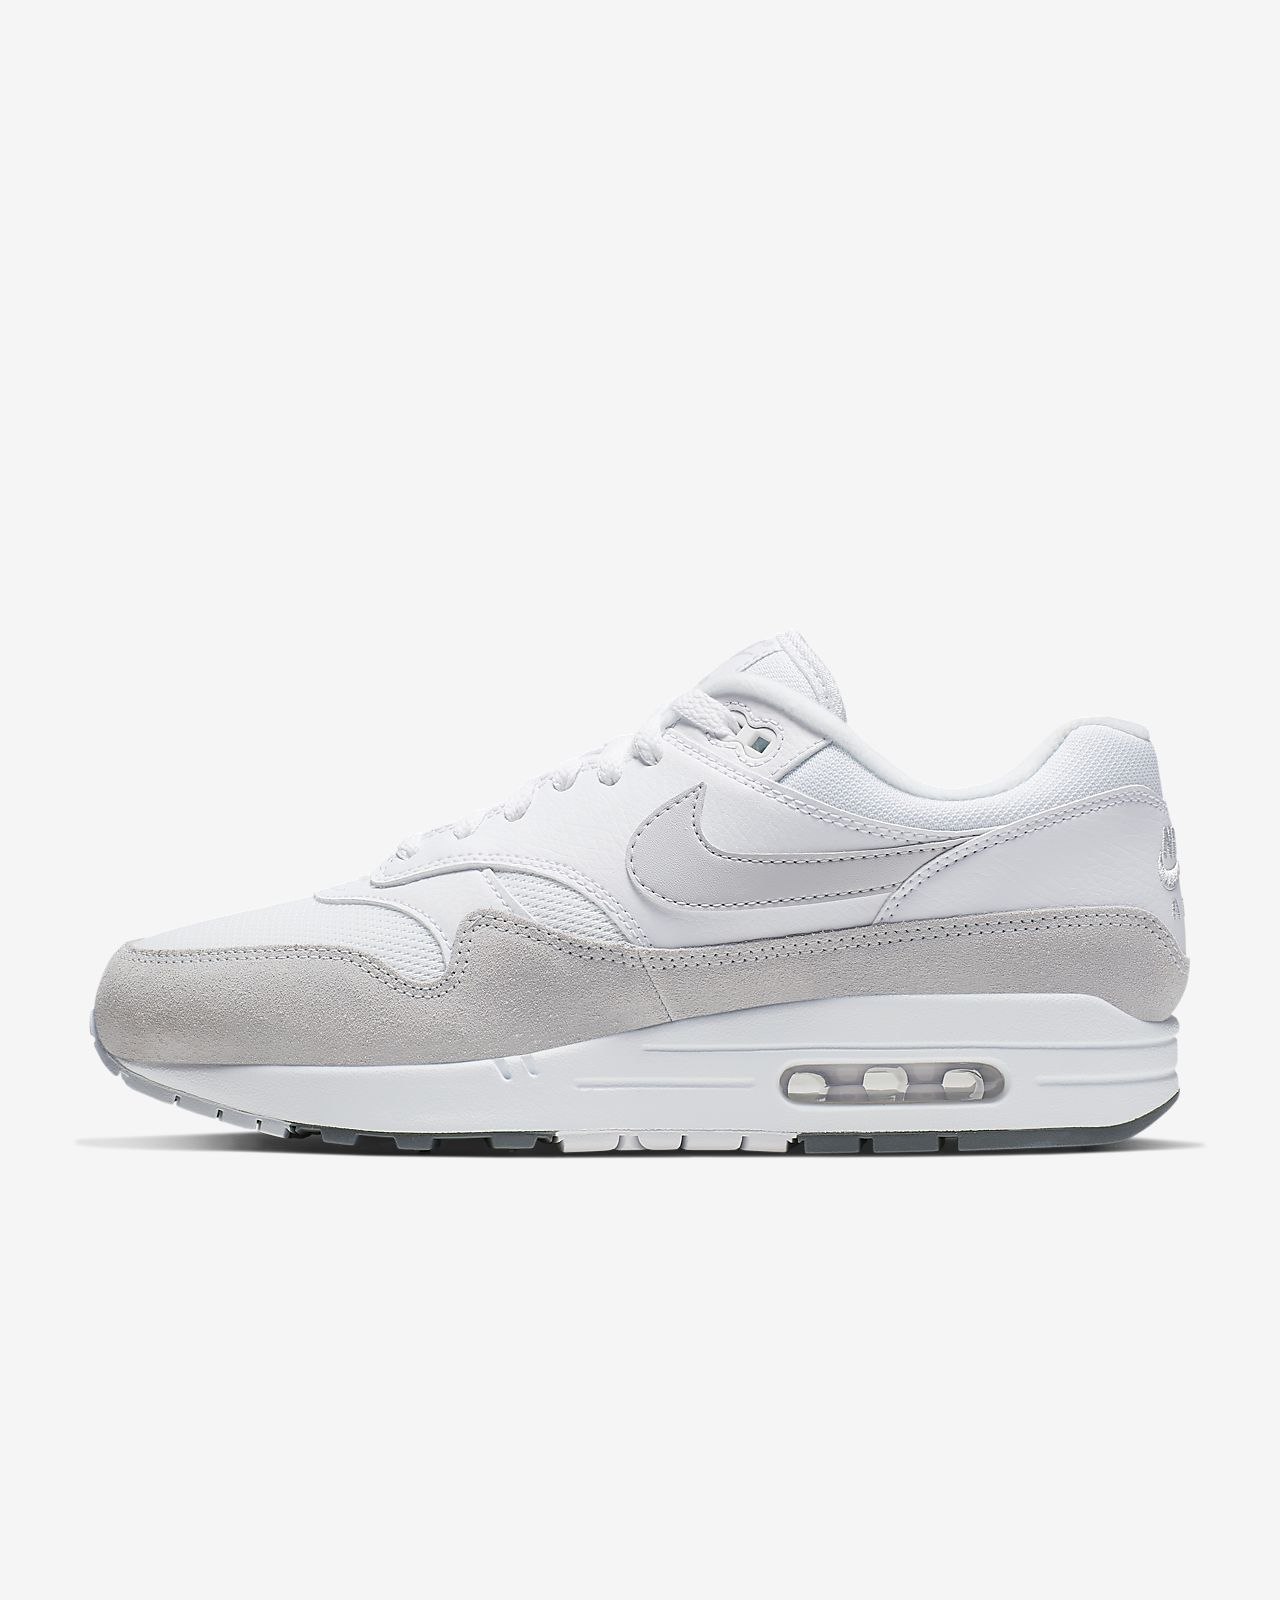 9bc82d5185 Nike Air Max 1 Men's Shoe. Nike.com